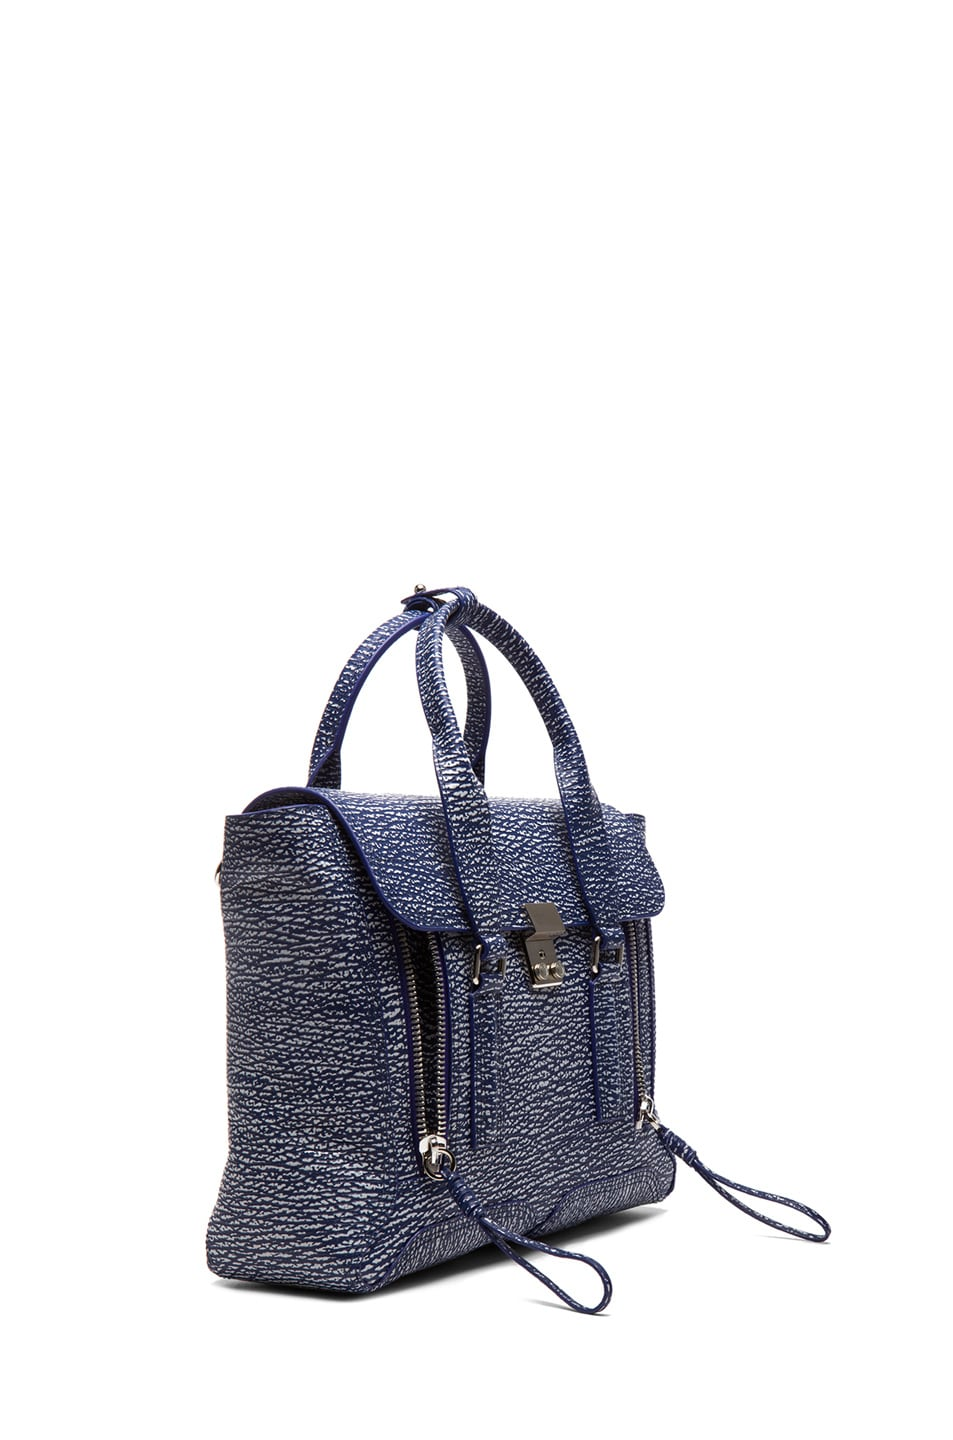 Image 3 of 3.1 phillip lim Medium Pashli Trapeze in Cobalt & Antique White